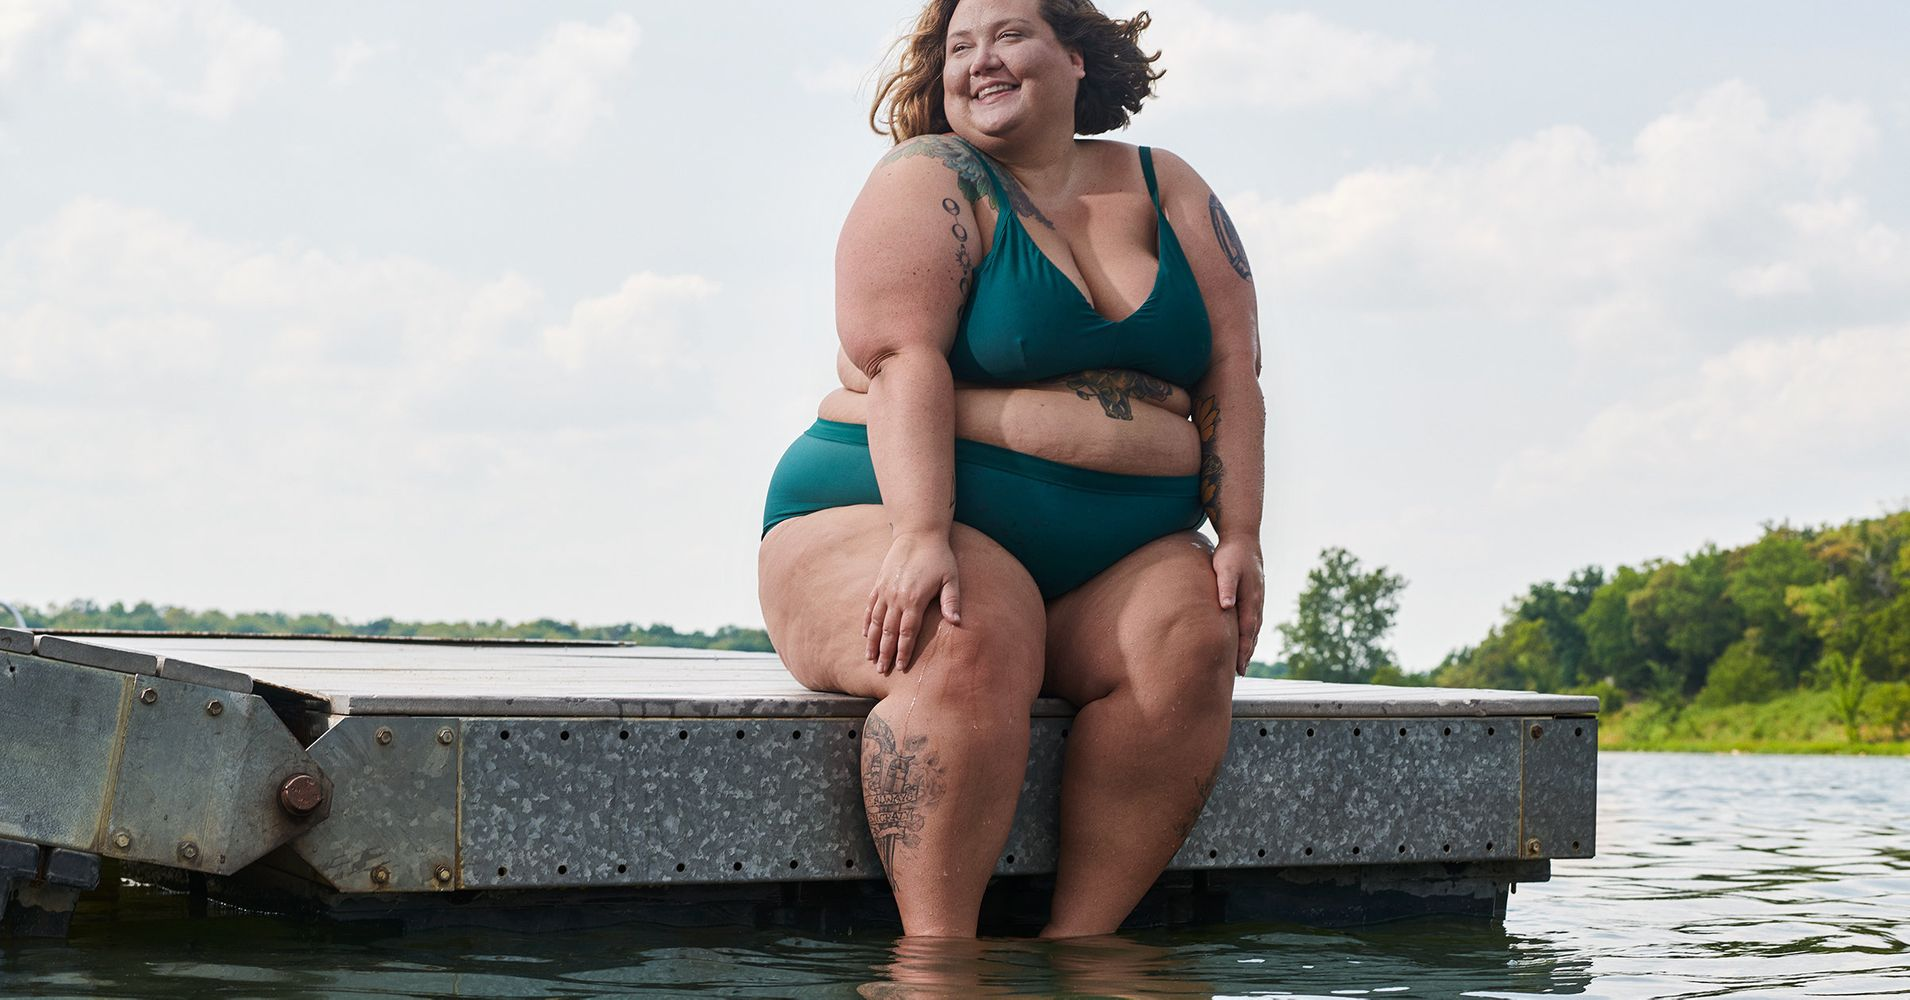 https://www.huffingtonpost.com/entry/opinion-obesity-health-fat-shame-respect_us_5ba52251e4b069d5f9d27e54